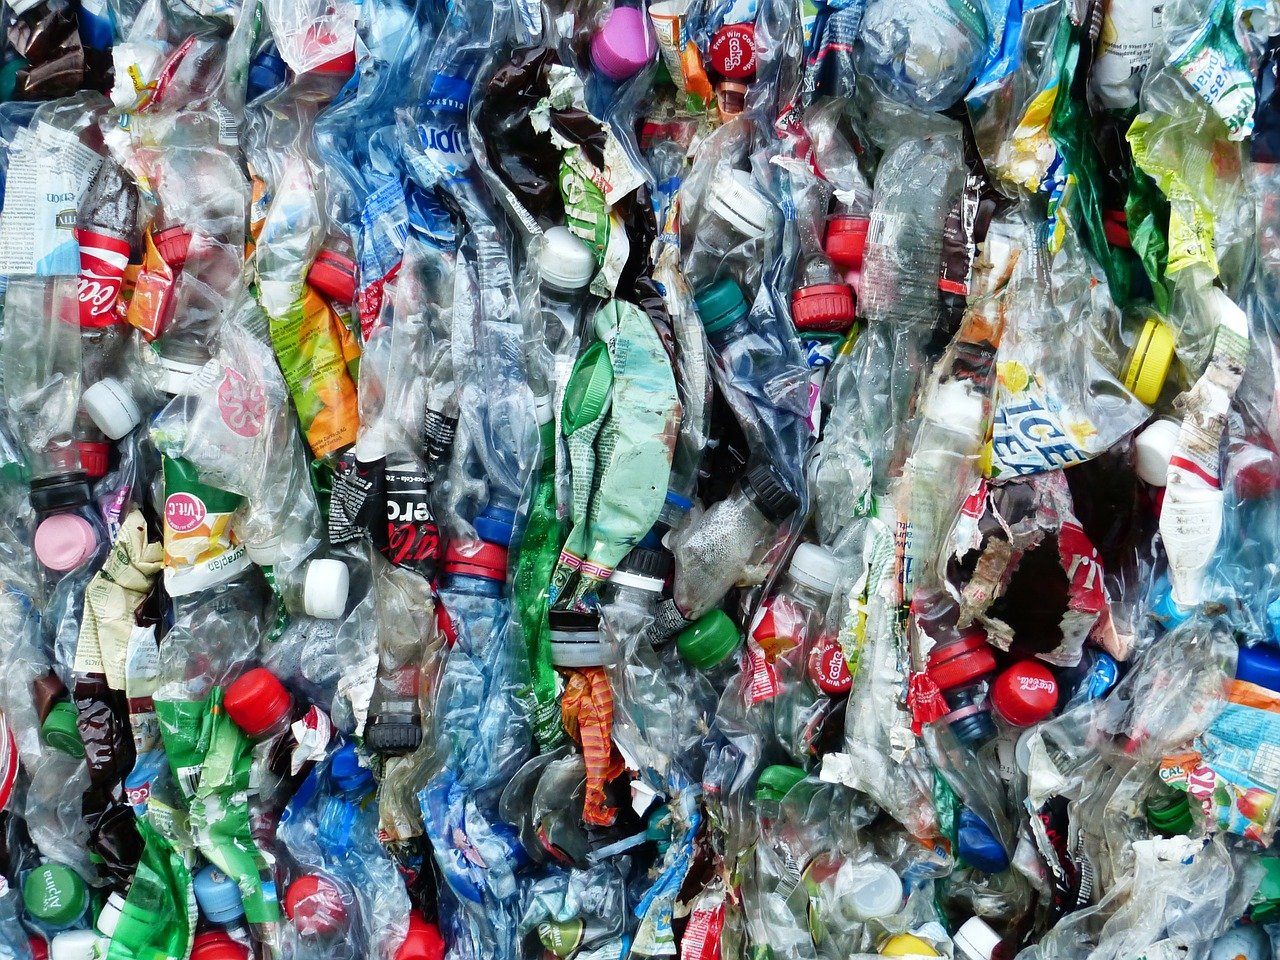 Carbios's Plastic-Eating Enzyme May Help Alleviate The World's Pollution Problem